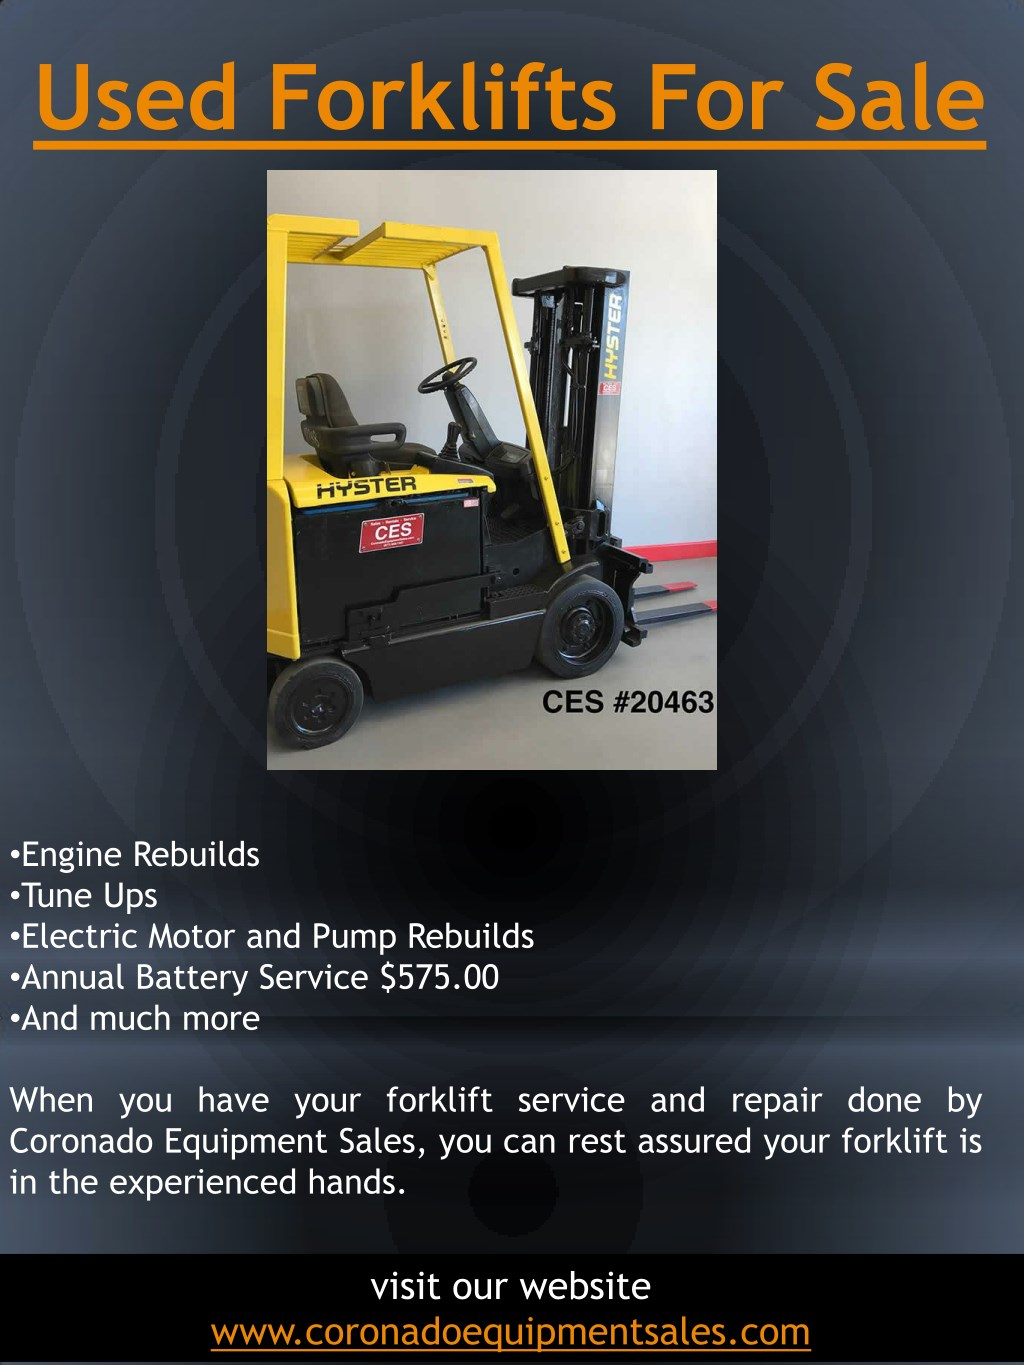 PPT - Used Forklifts For Sale PowerPoint Presentation - ID